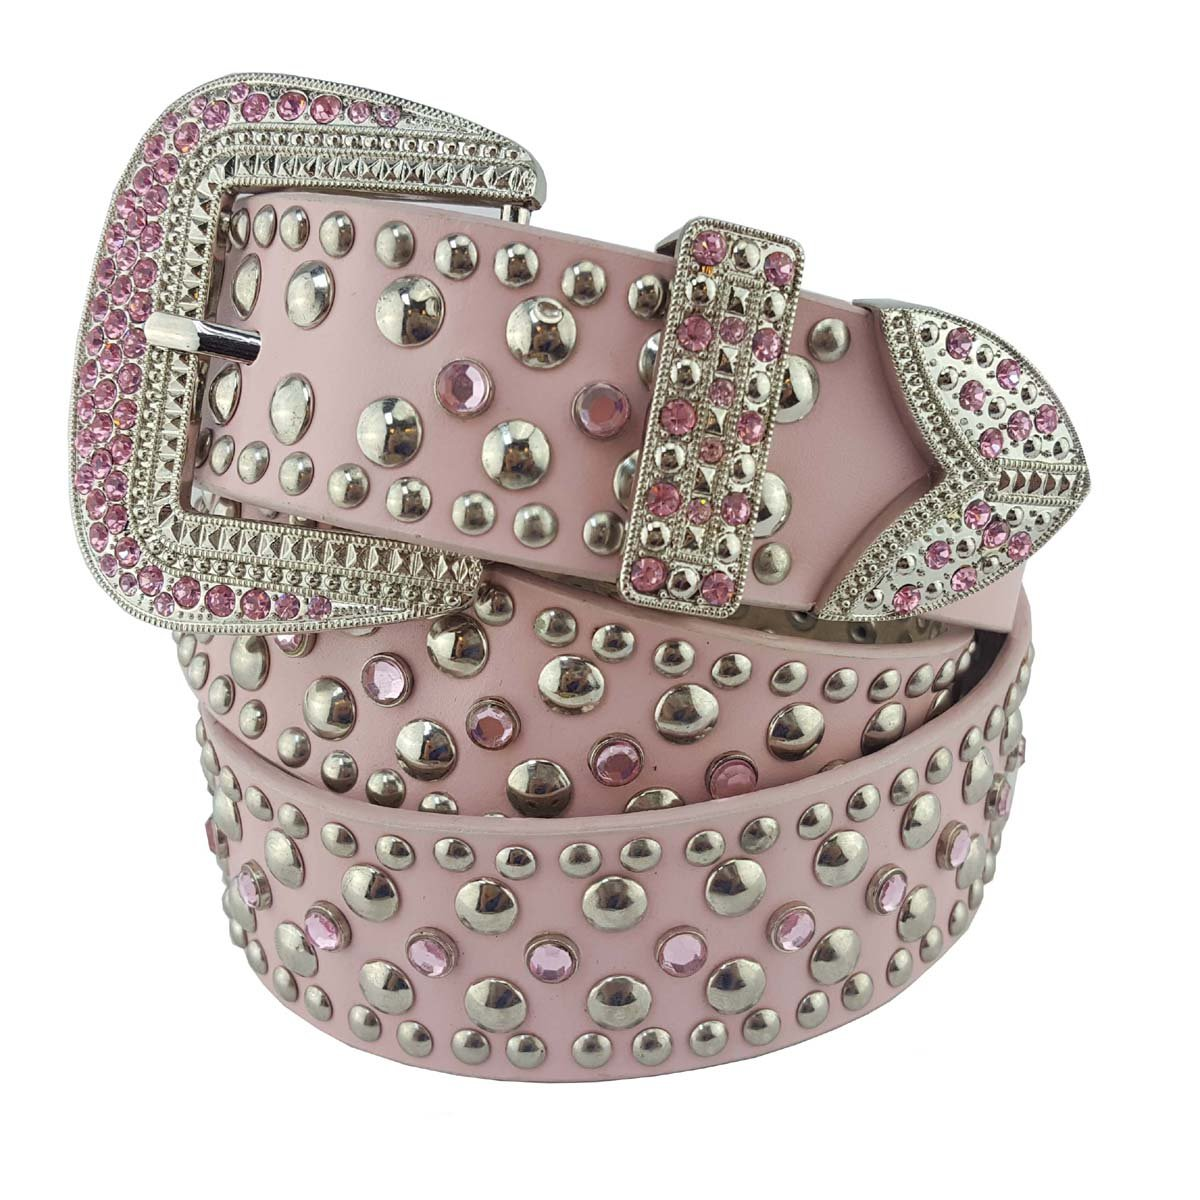 Western Stud and Crystal Belt in Pink LXL